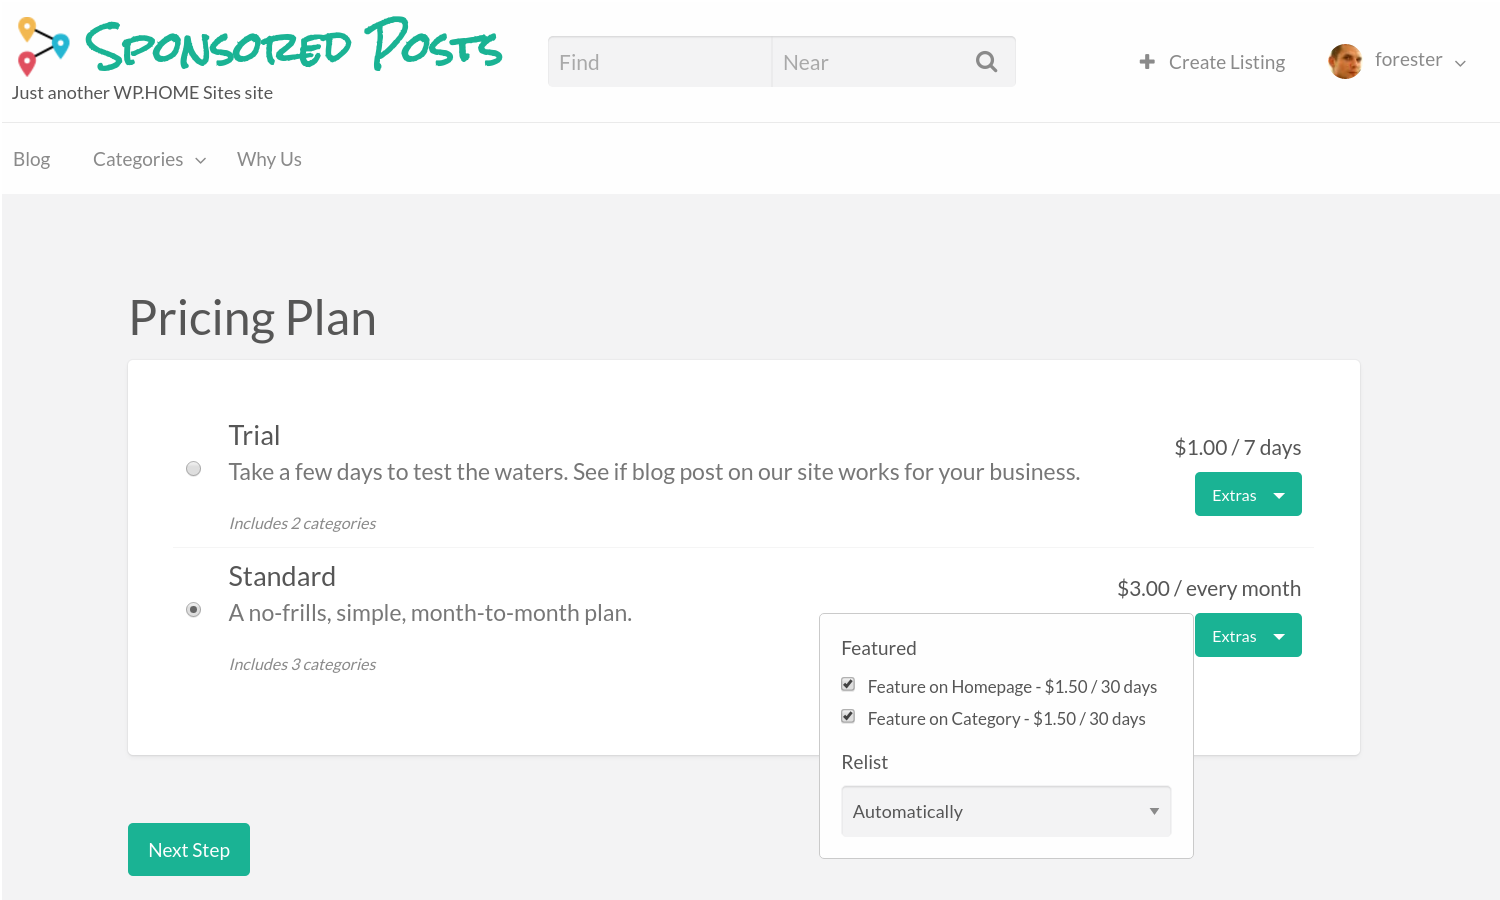 sponsored posts pricing plan advanced